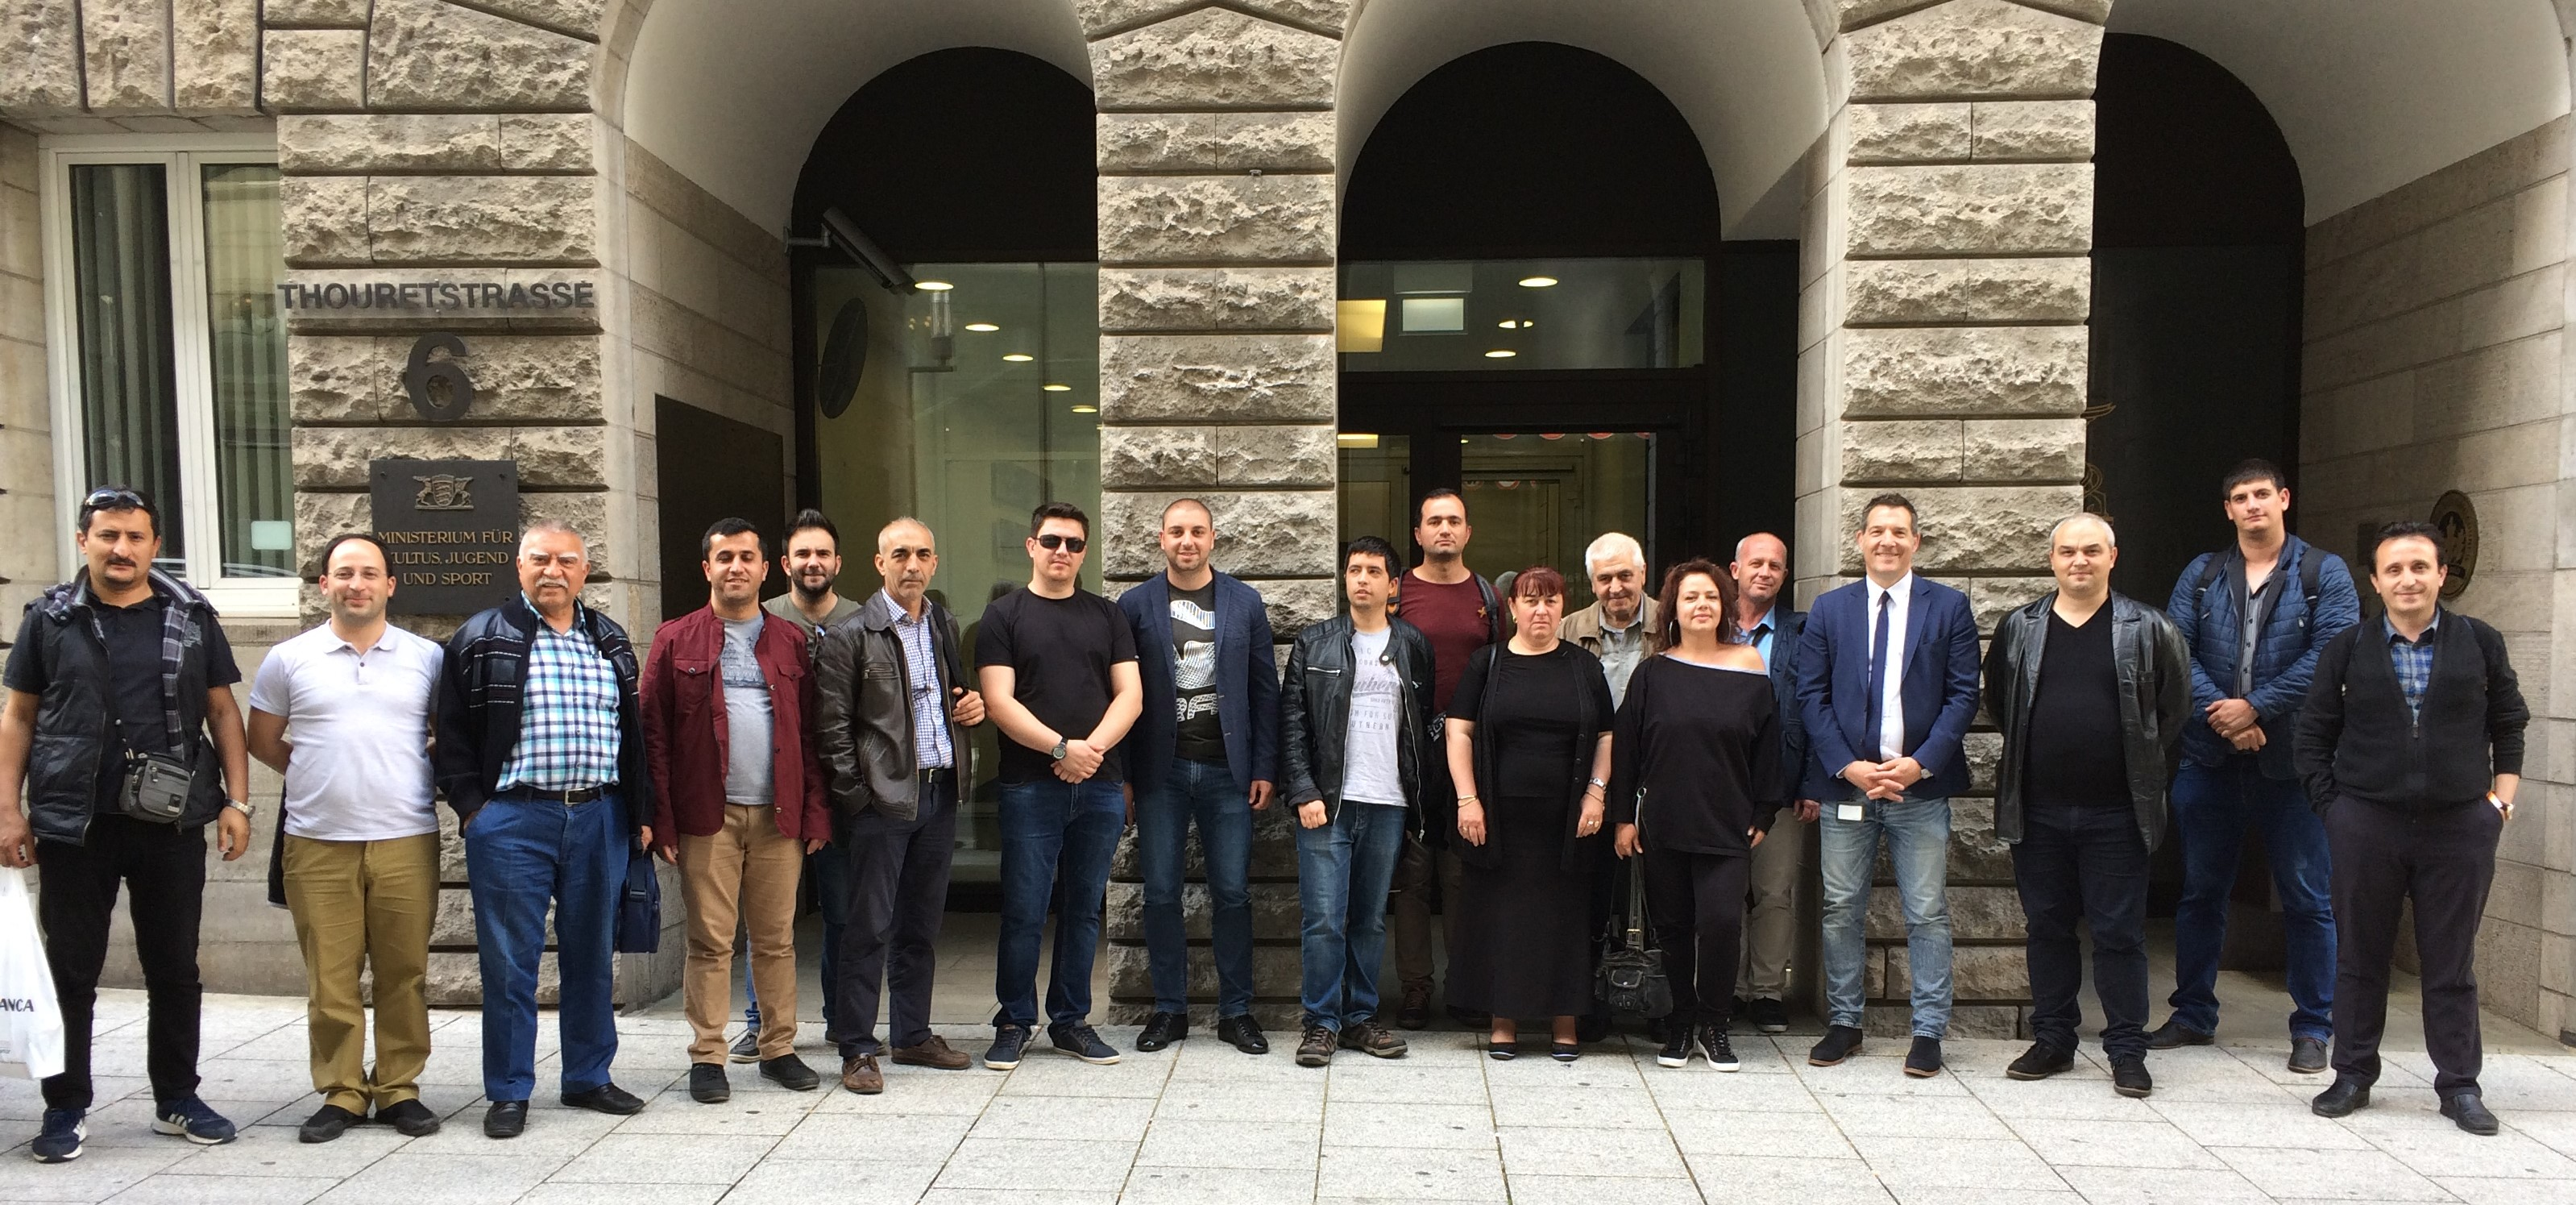 VET-teachers and trainers from Bulgaria and Turkey came to visit Germany